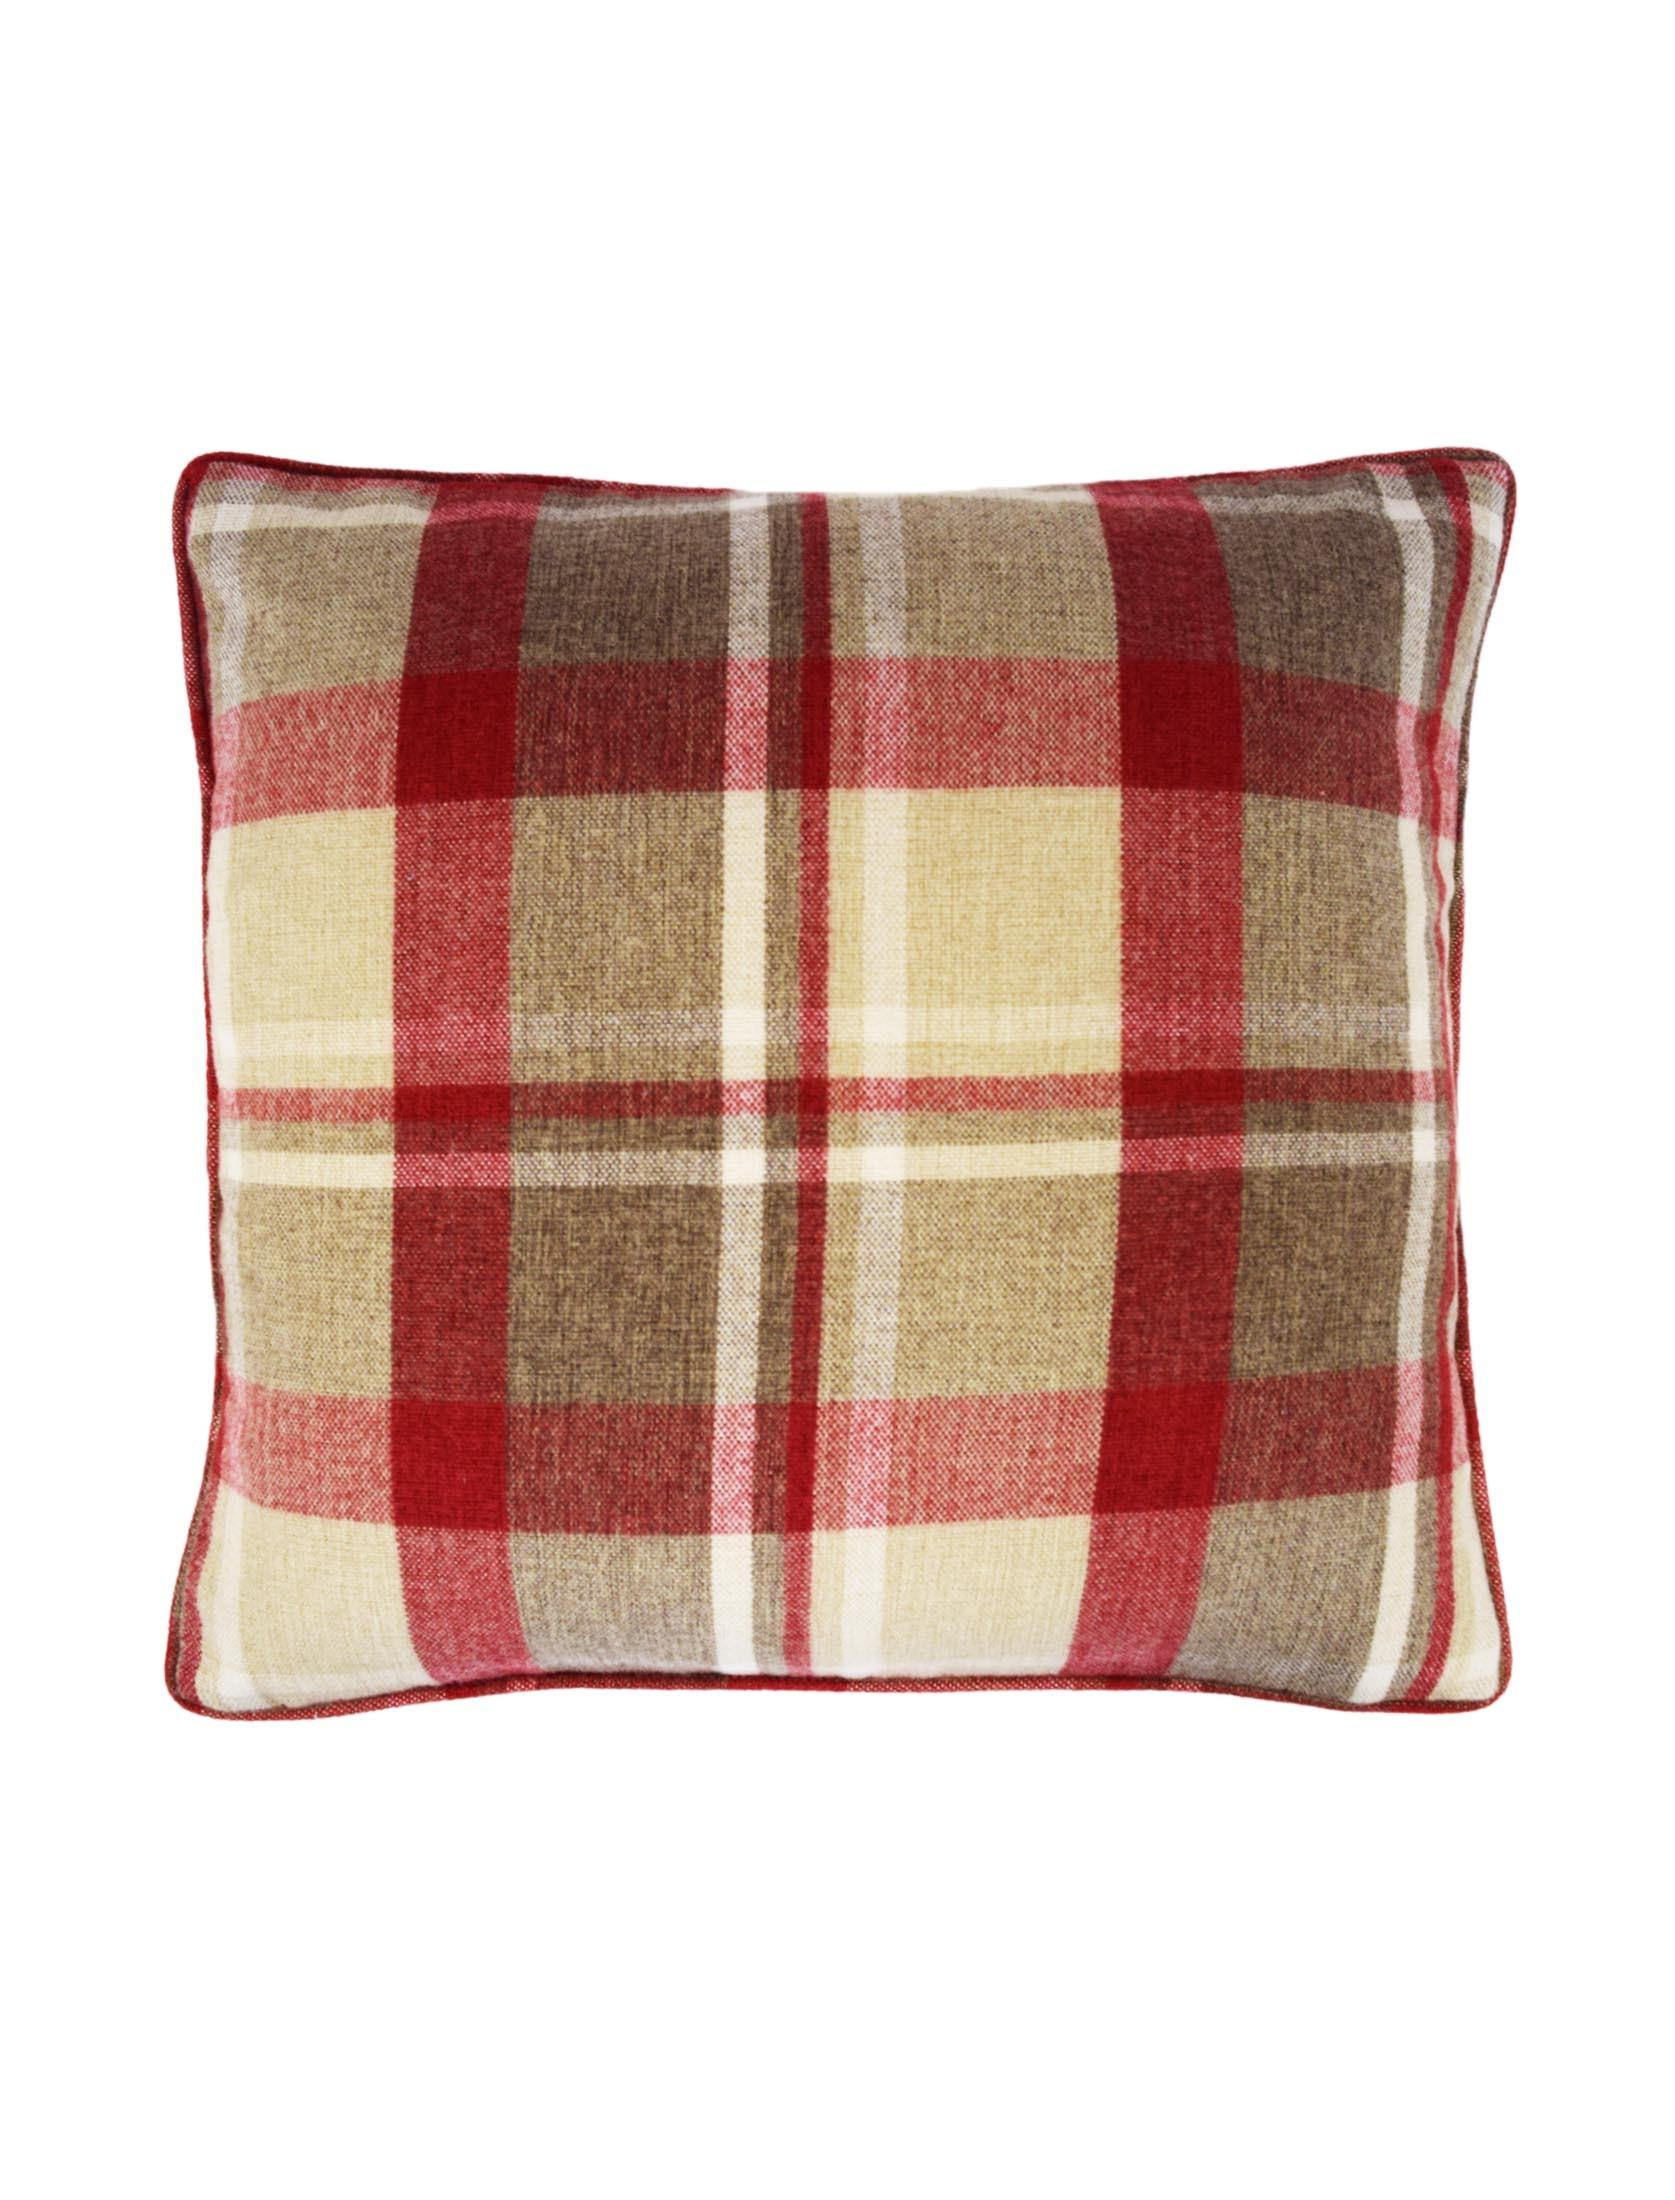 Cushion Covers Whether you are buying just a new cover or a cushion with filling pad and cover as a set, design pattern and cover material are important choices. Cushion covers can be made of cotton, linen, silk, knitted wool, or faux fur to name a few.